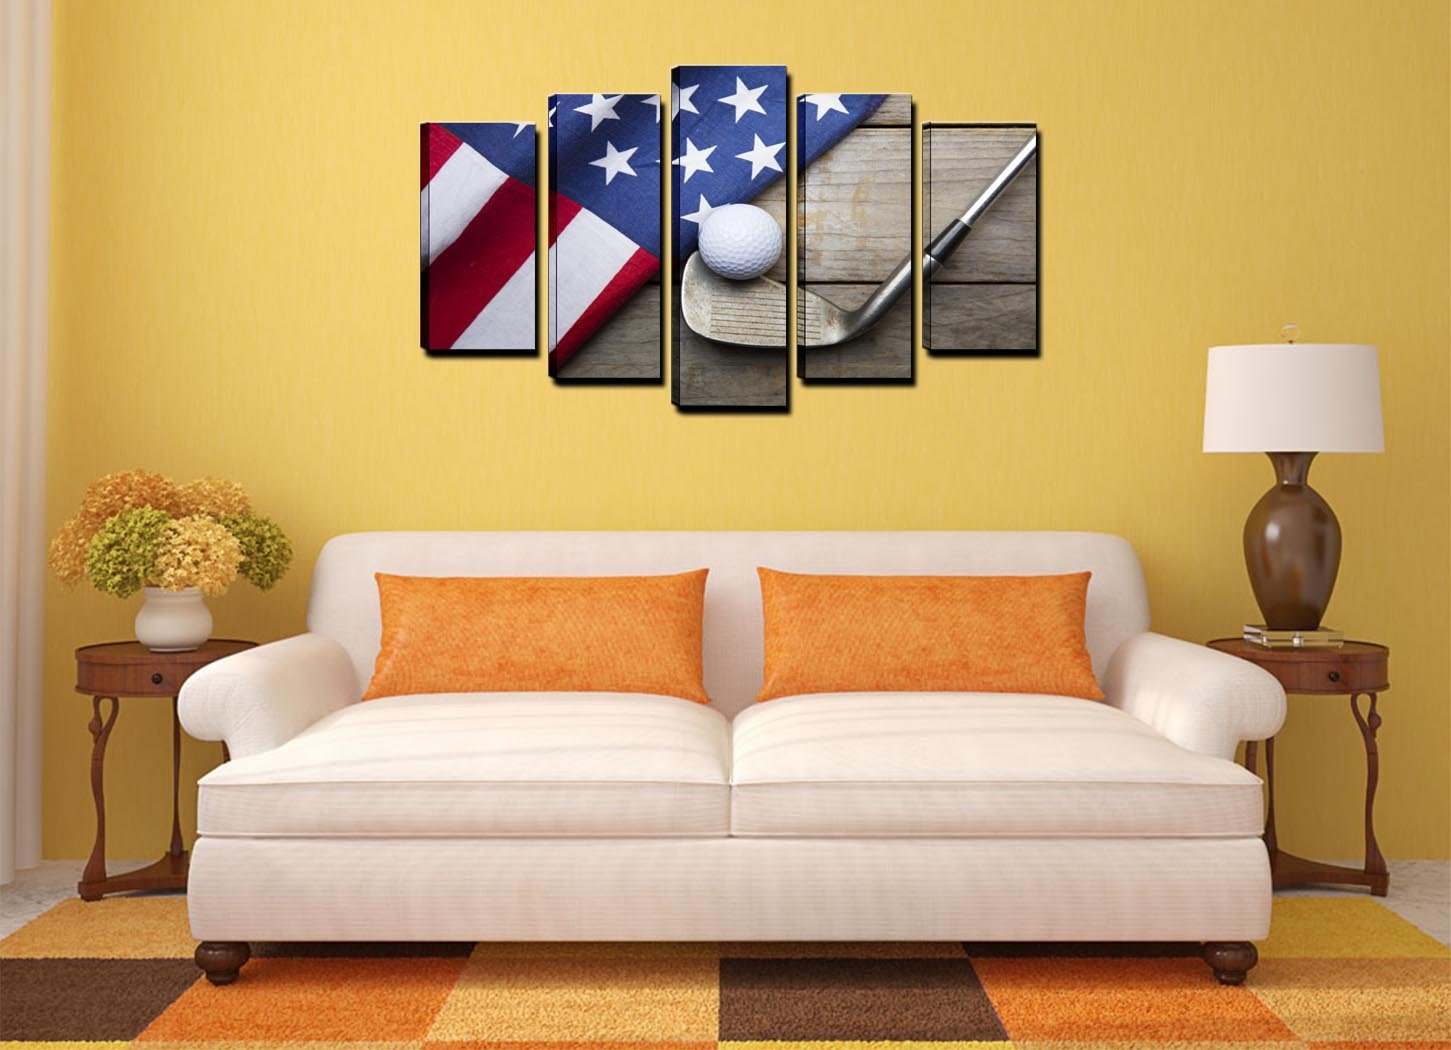 Nice Decorative Boat Oars On Wall Ideas - The Wall Art Decorations ...